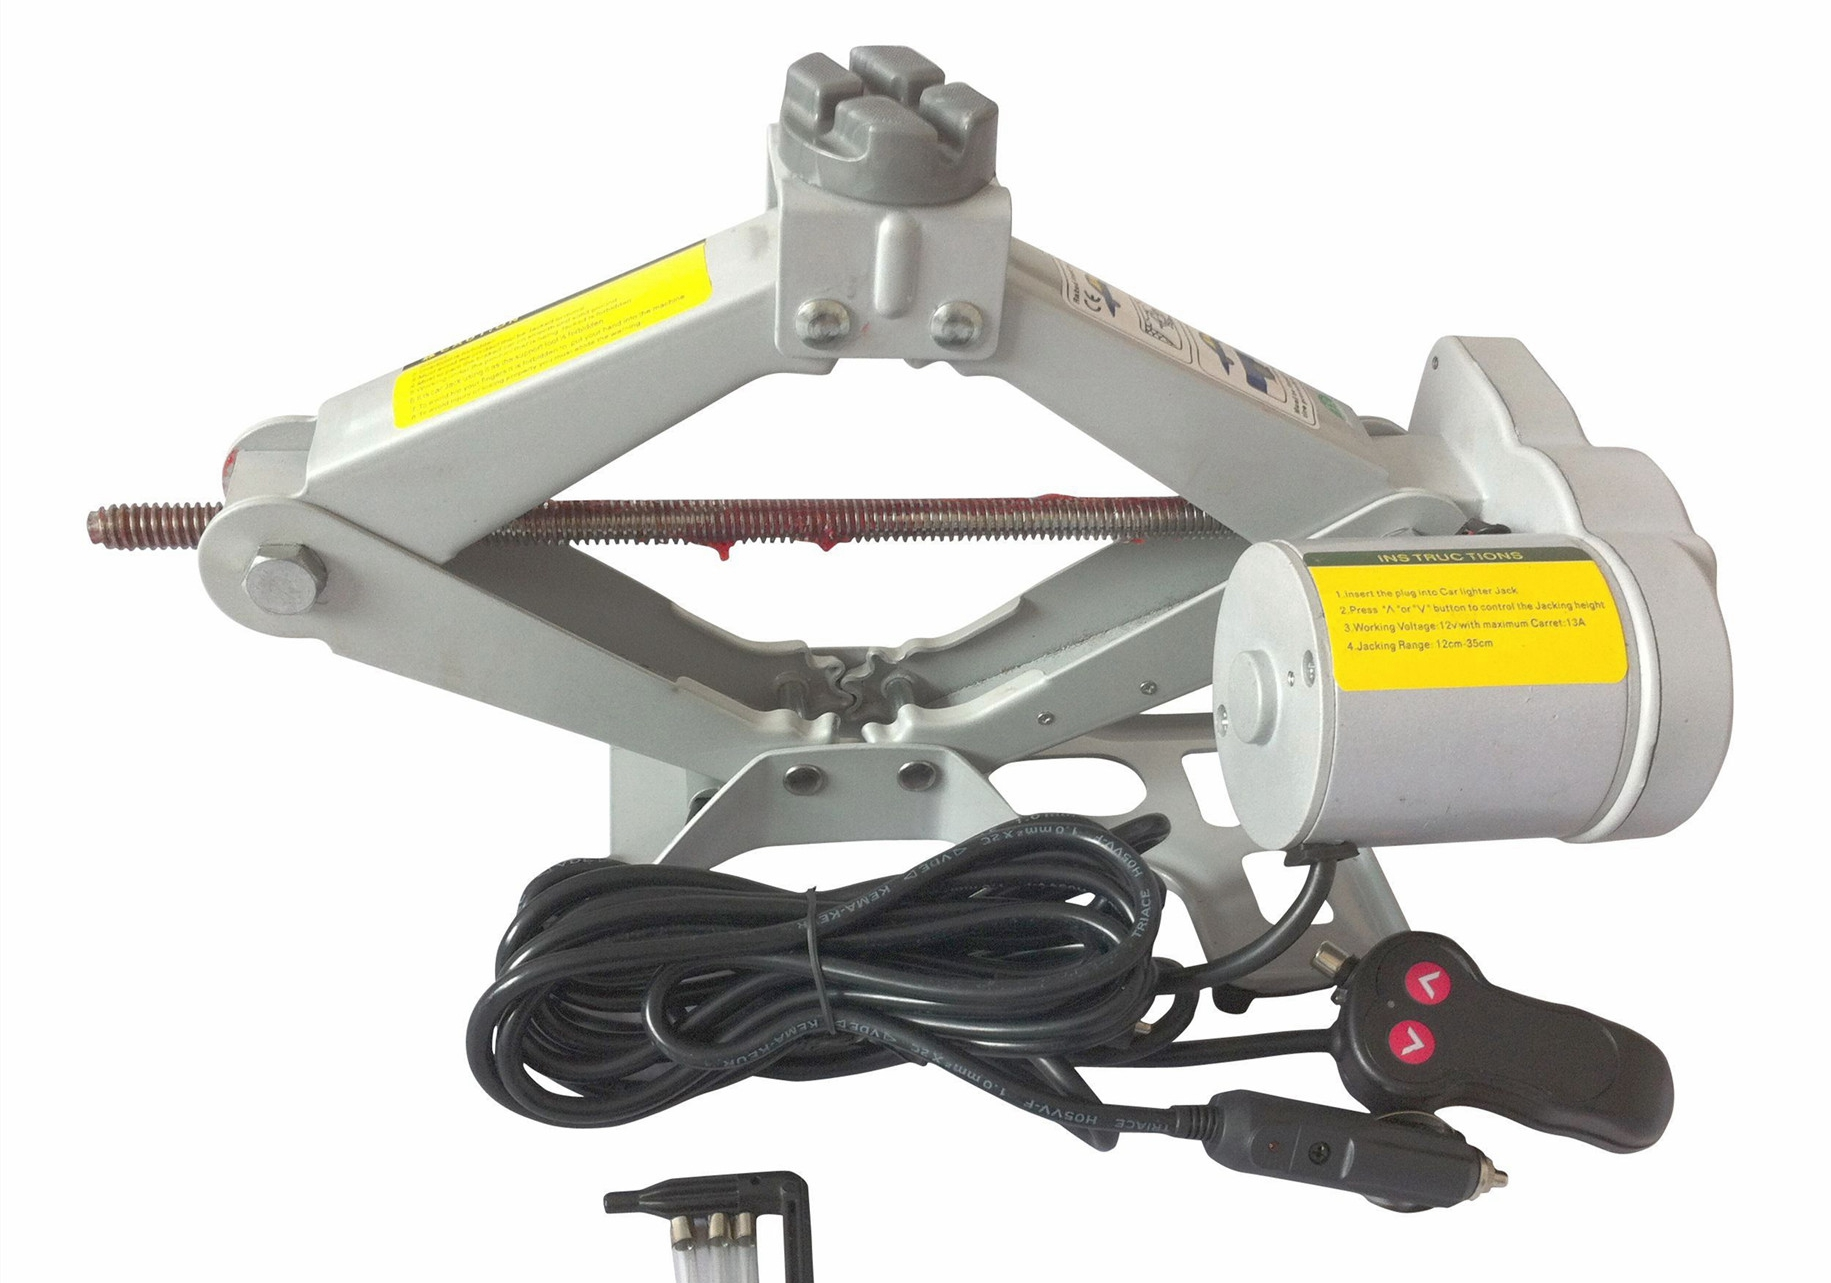 Australia electric car jack 12V 2 t horizontal vehicle(China (Mainland))